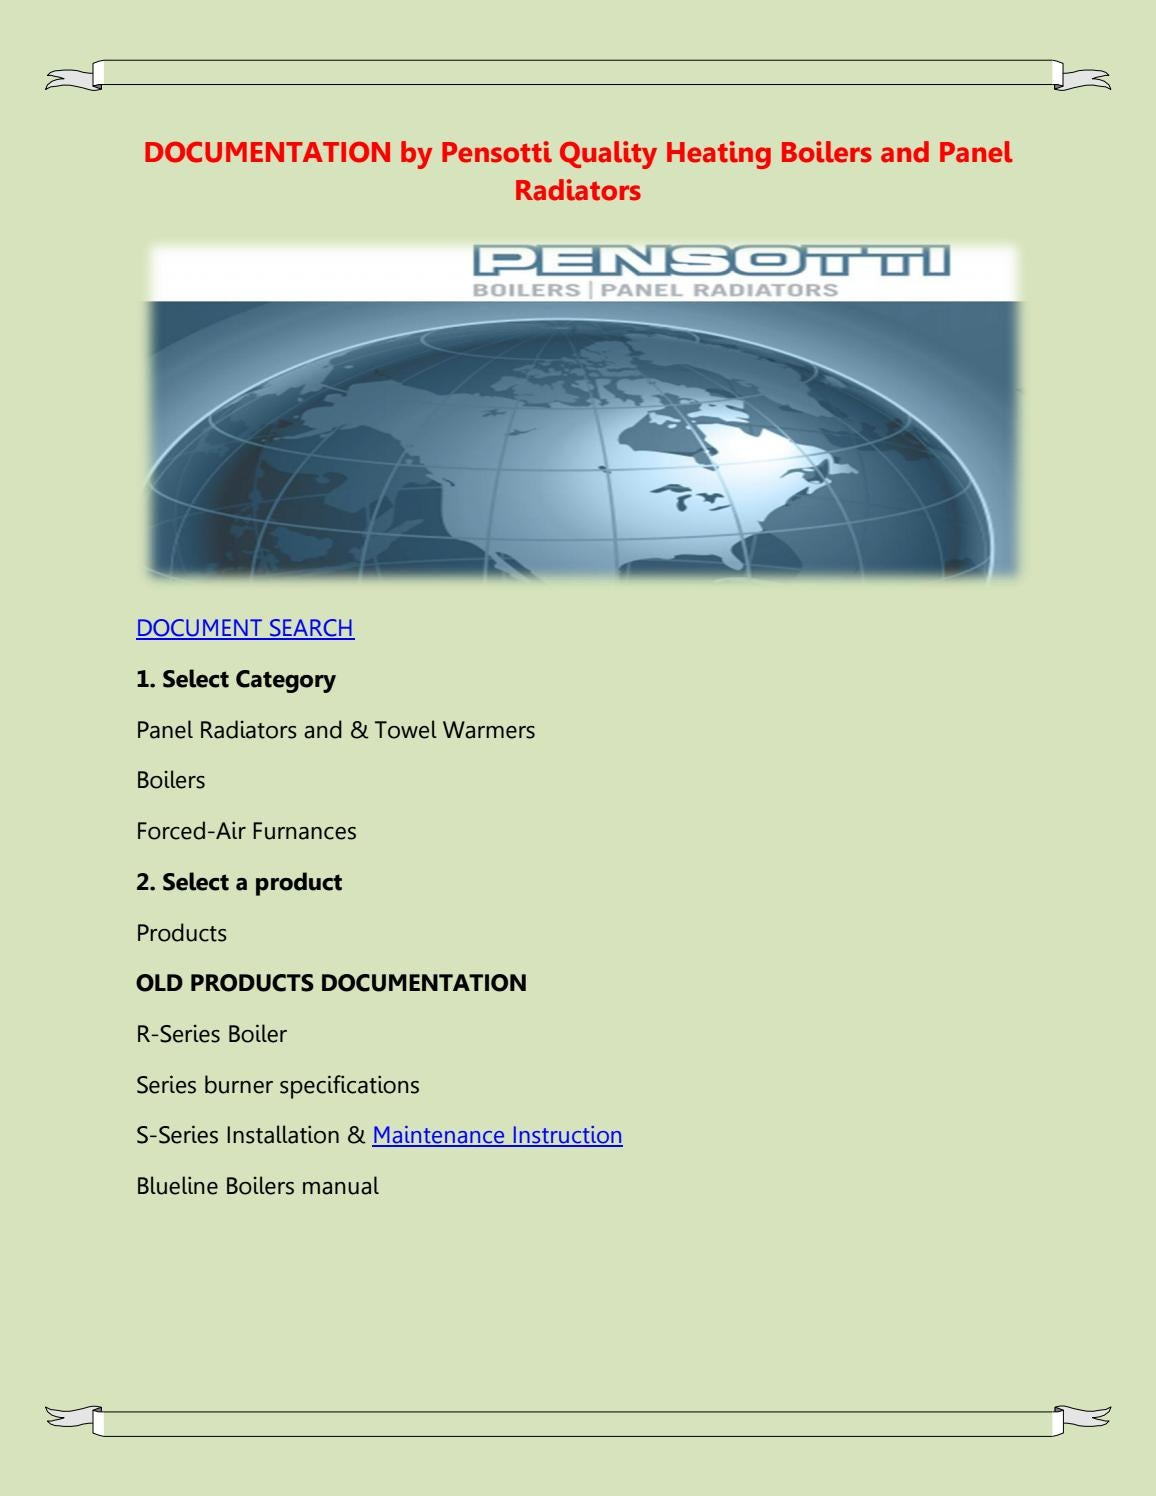 DOCUMENTATION by Pensotti Quality Heating Boilers and Panel Radiators by  Afric Koputh - issuu